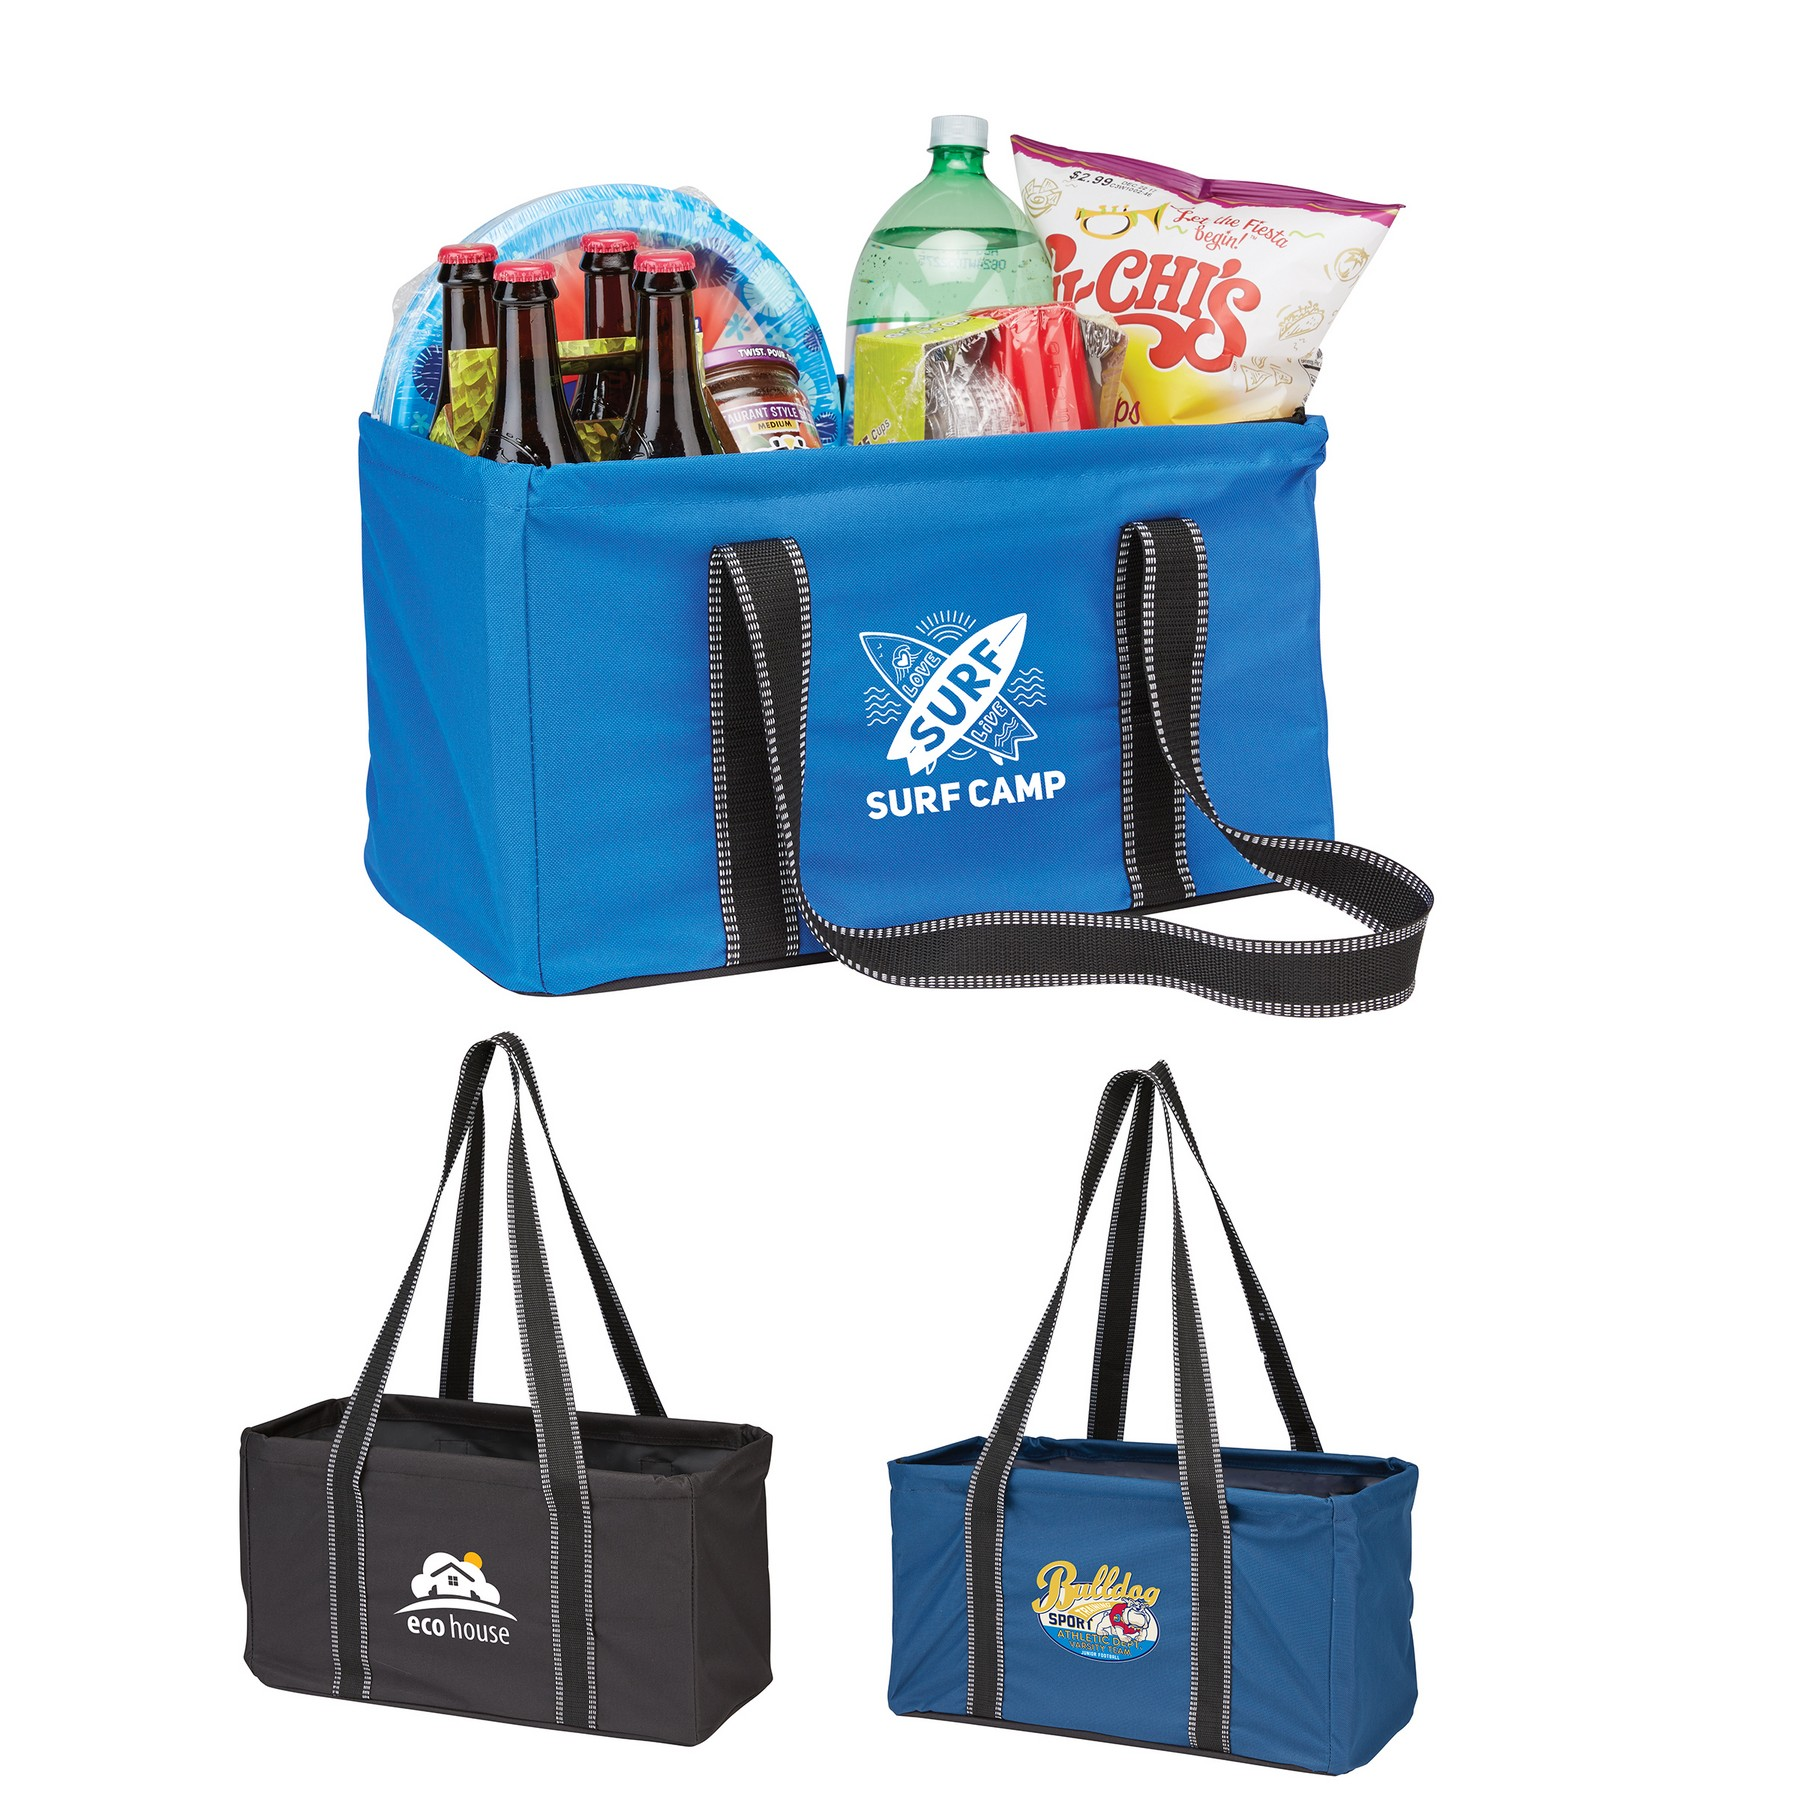 utility tote trunk organizer with logo